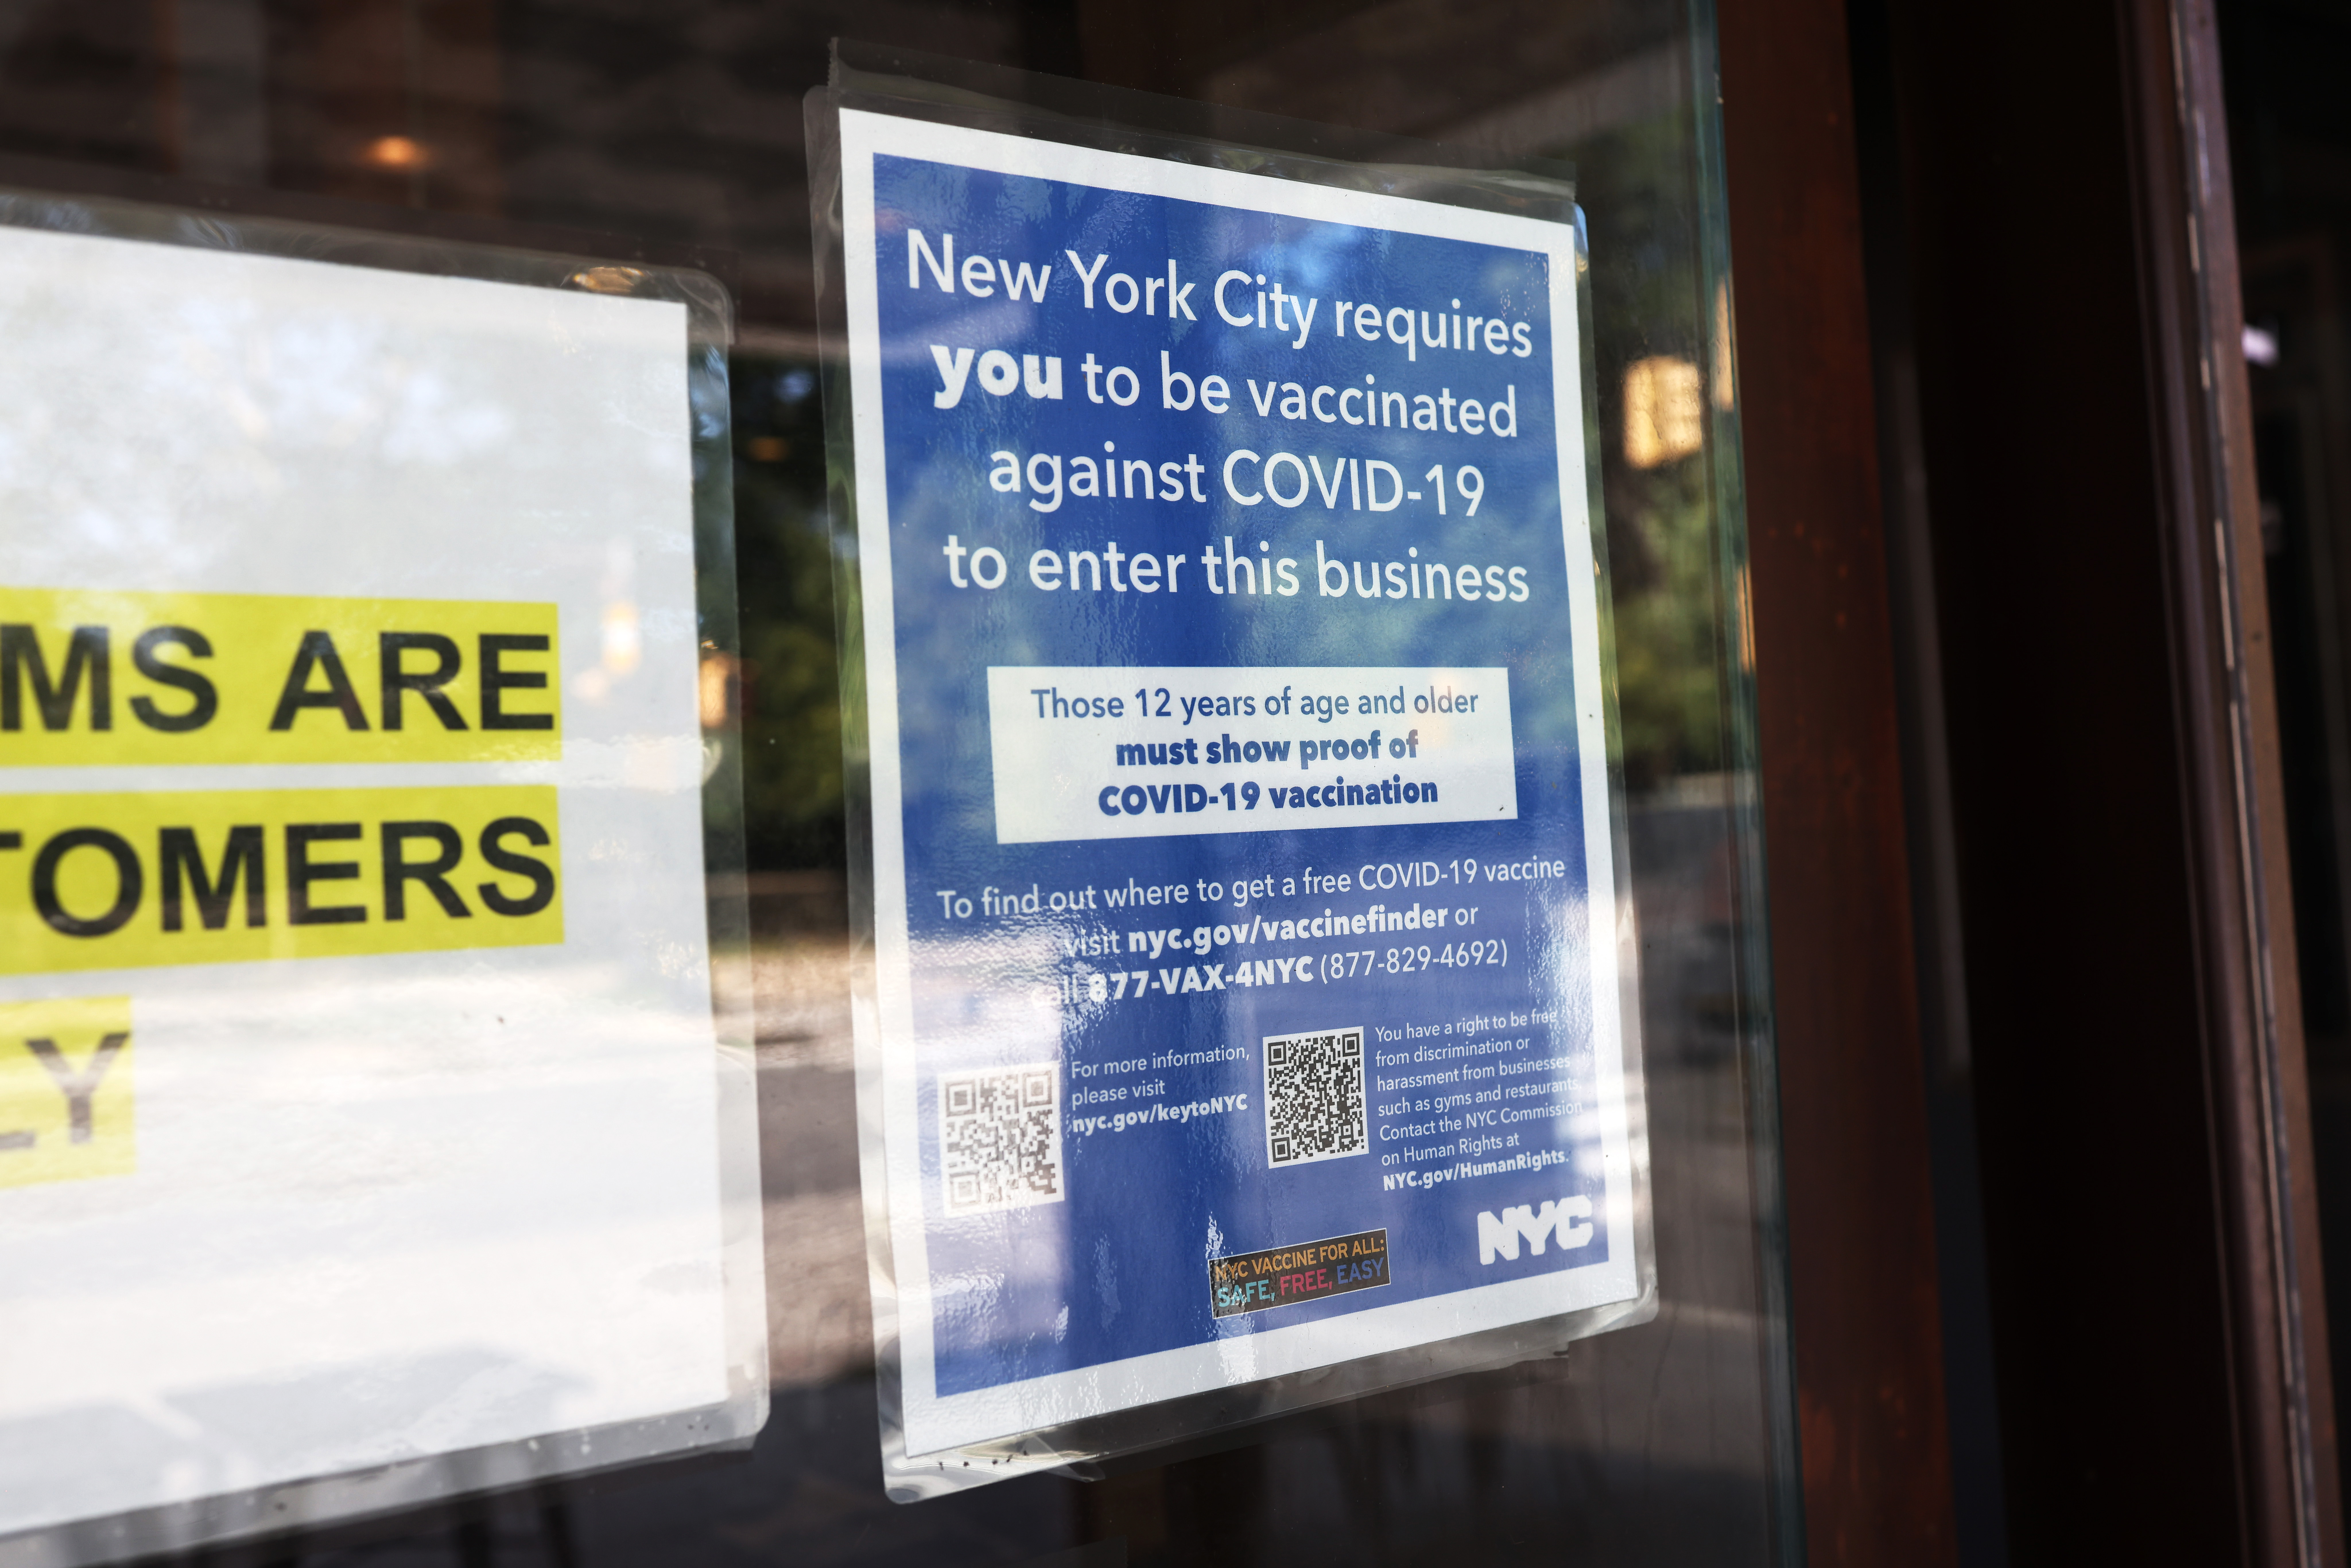 A coronavirus (COVID-19) vaccination sign is seen posted at the entrance of Nighthawk Cinema in the Park Slope neighborhood of Brooklyn in New York City. (Photo by Michael M. Santiago/Getty Images)